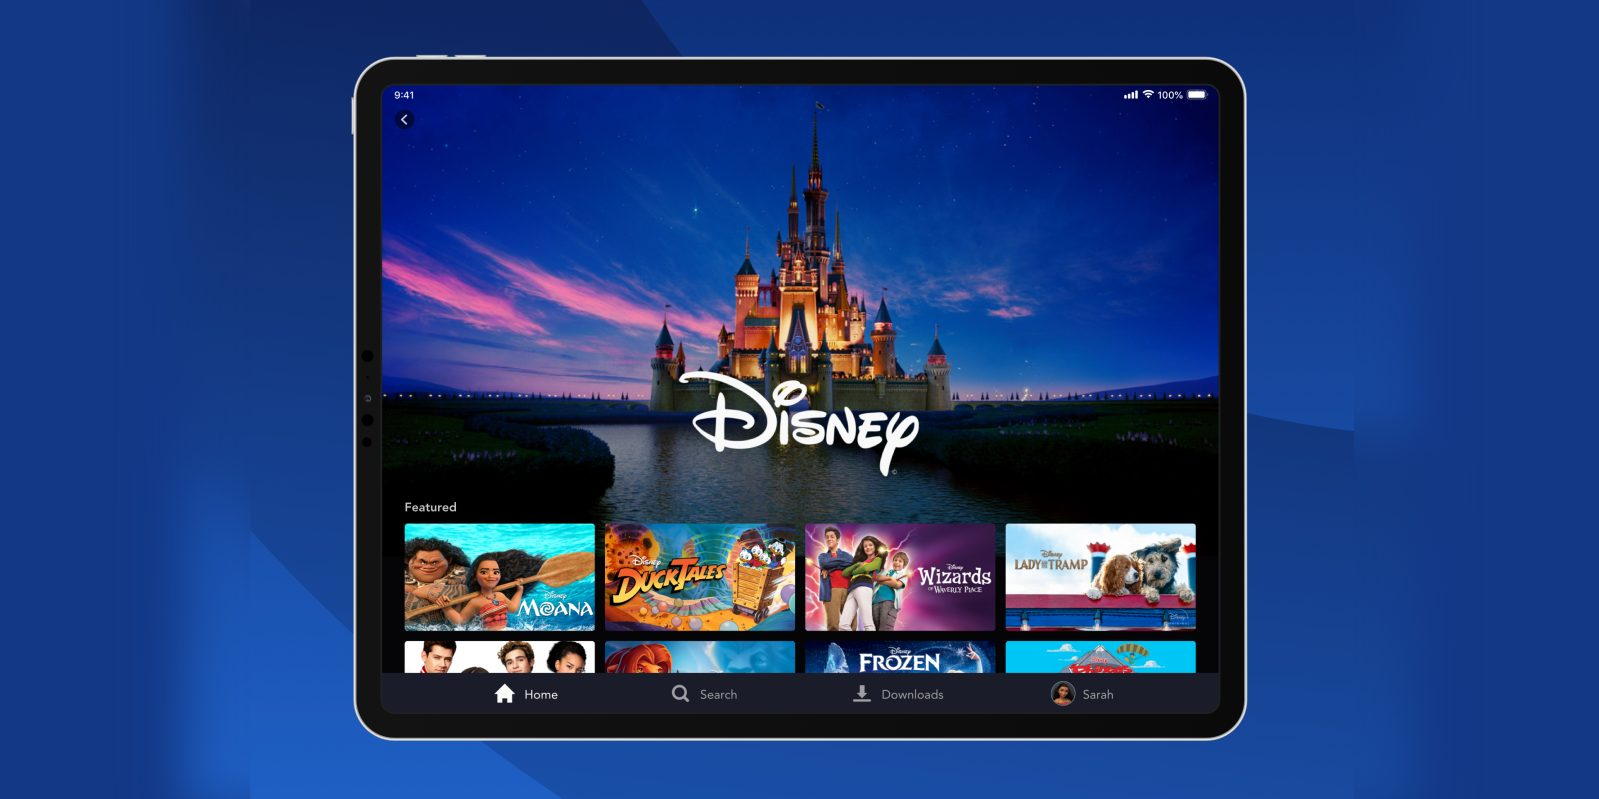 Disney+ app now available to download on iPhone, iPad, and Apple TV